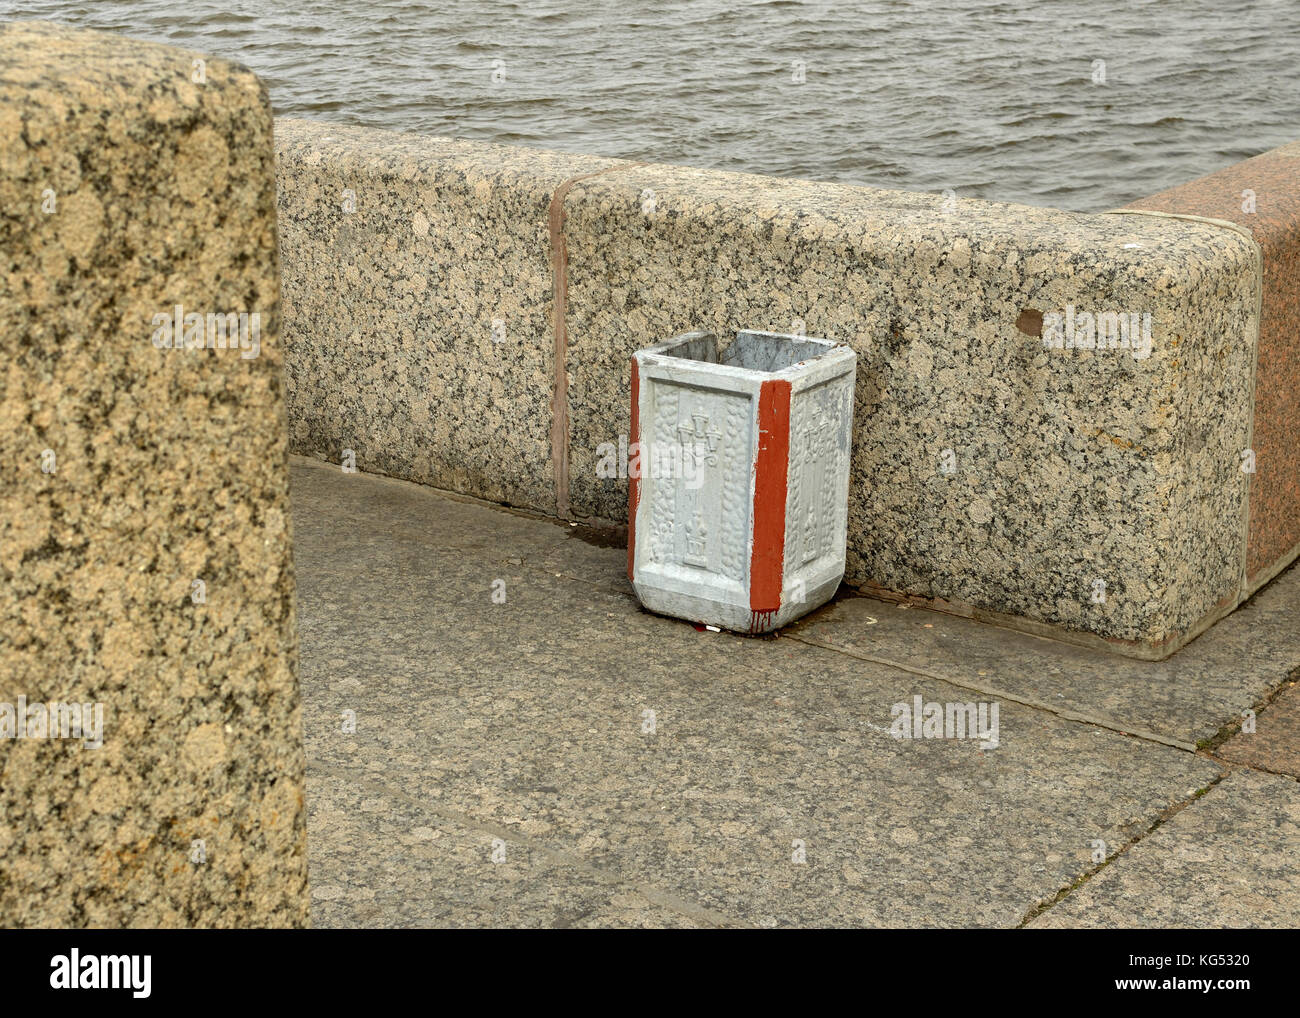 The trash bin on the street.In the drawer ejects waste. - Stock Image